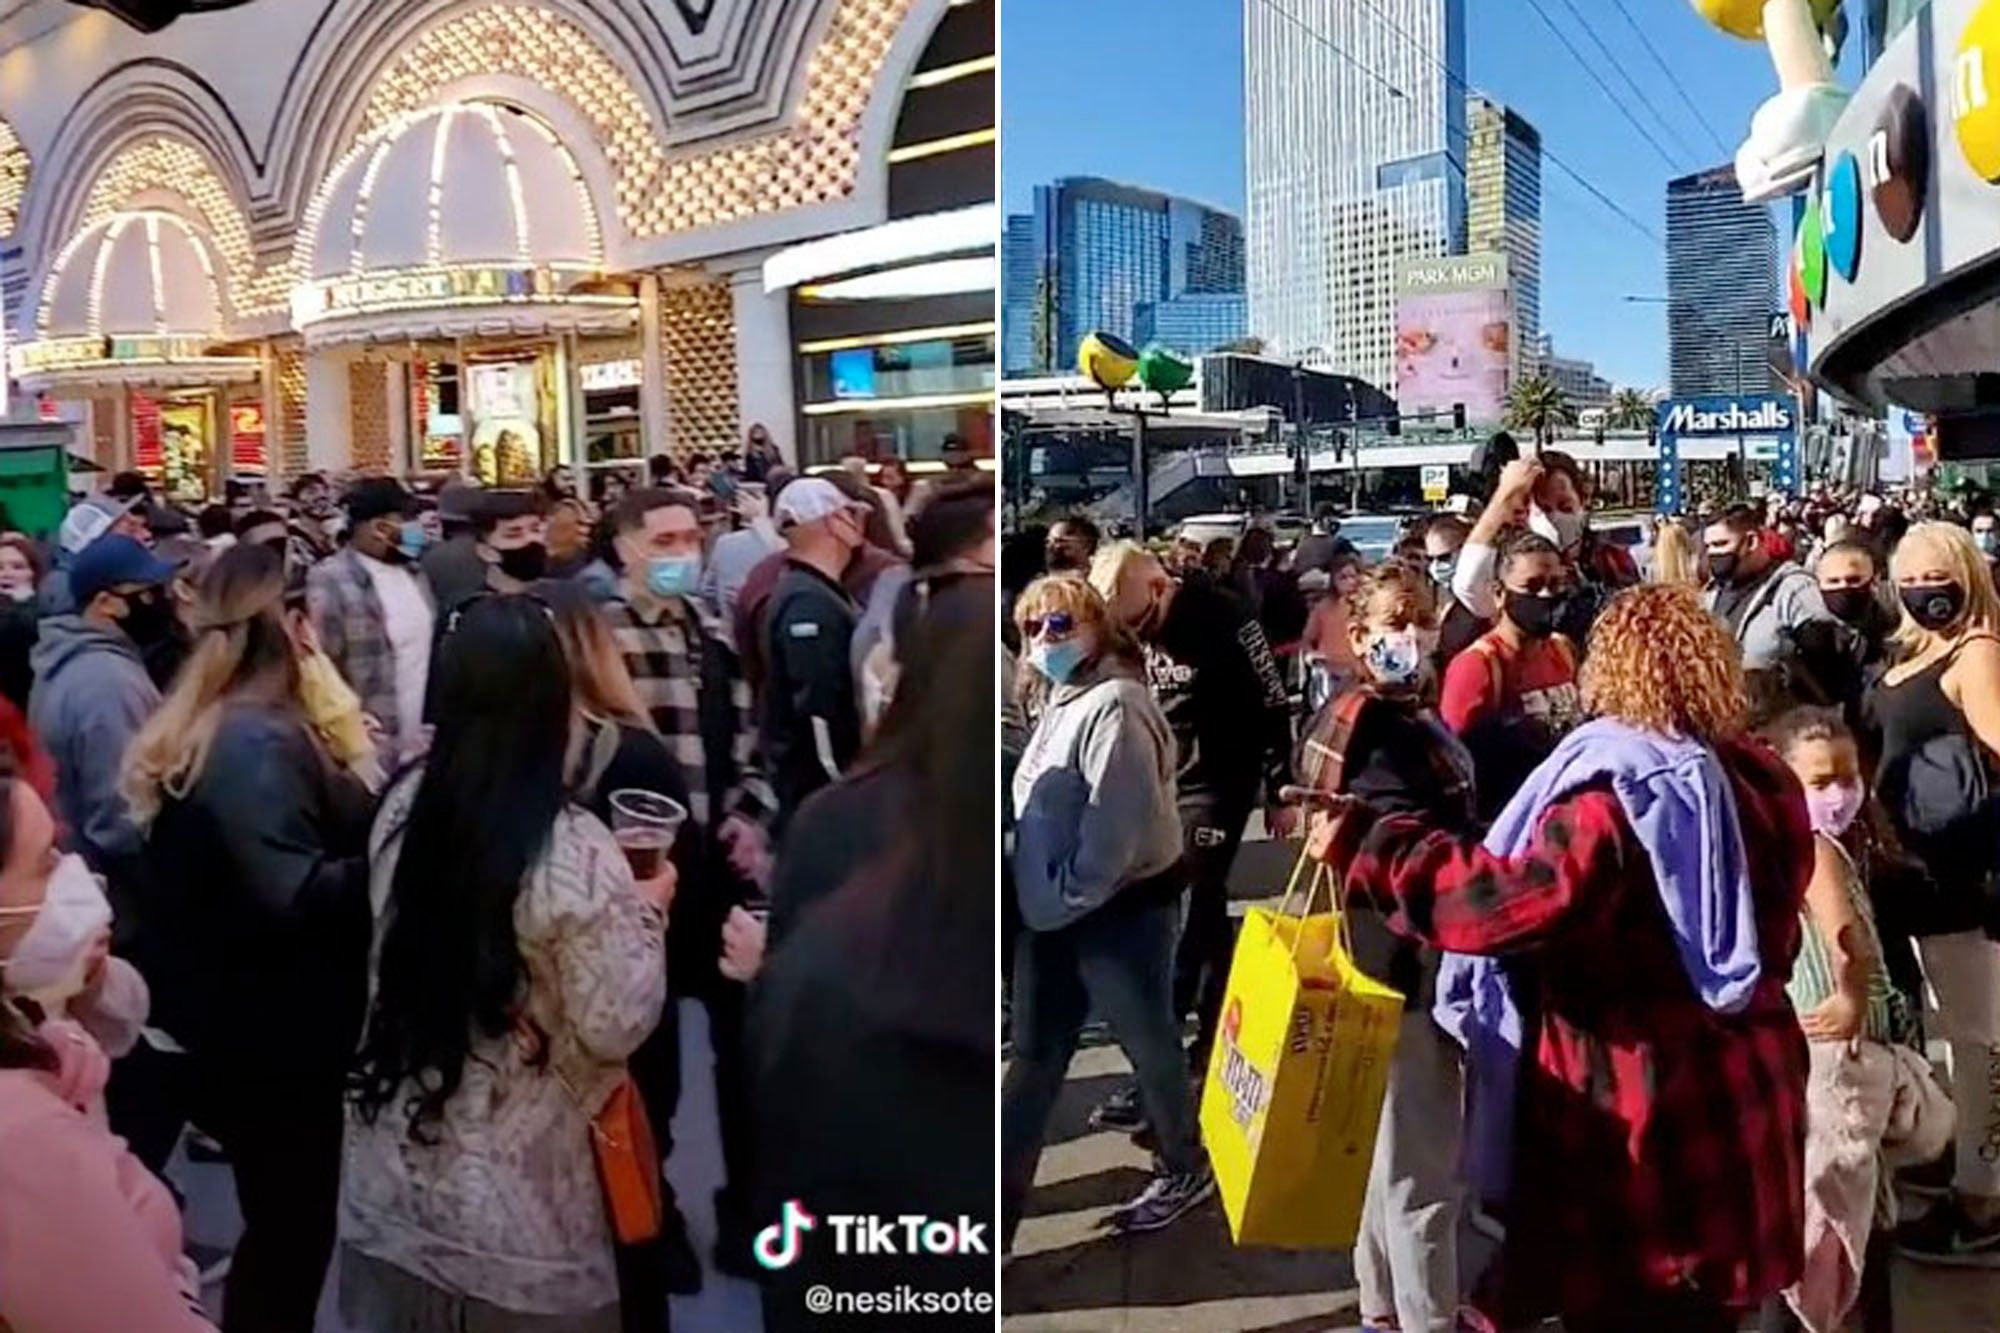 Las Vegas Sees Massive Crowds After Casinos Open To 50 Percent Capacity